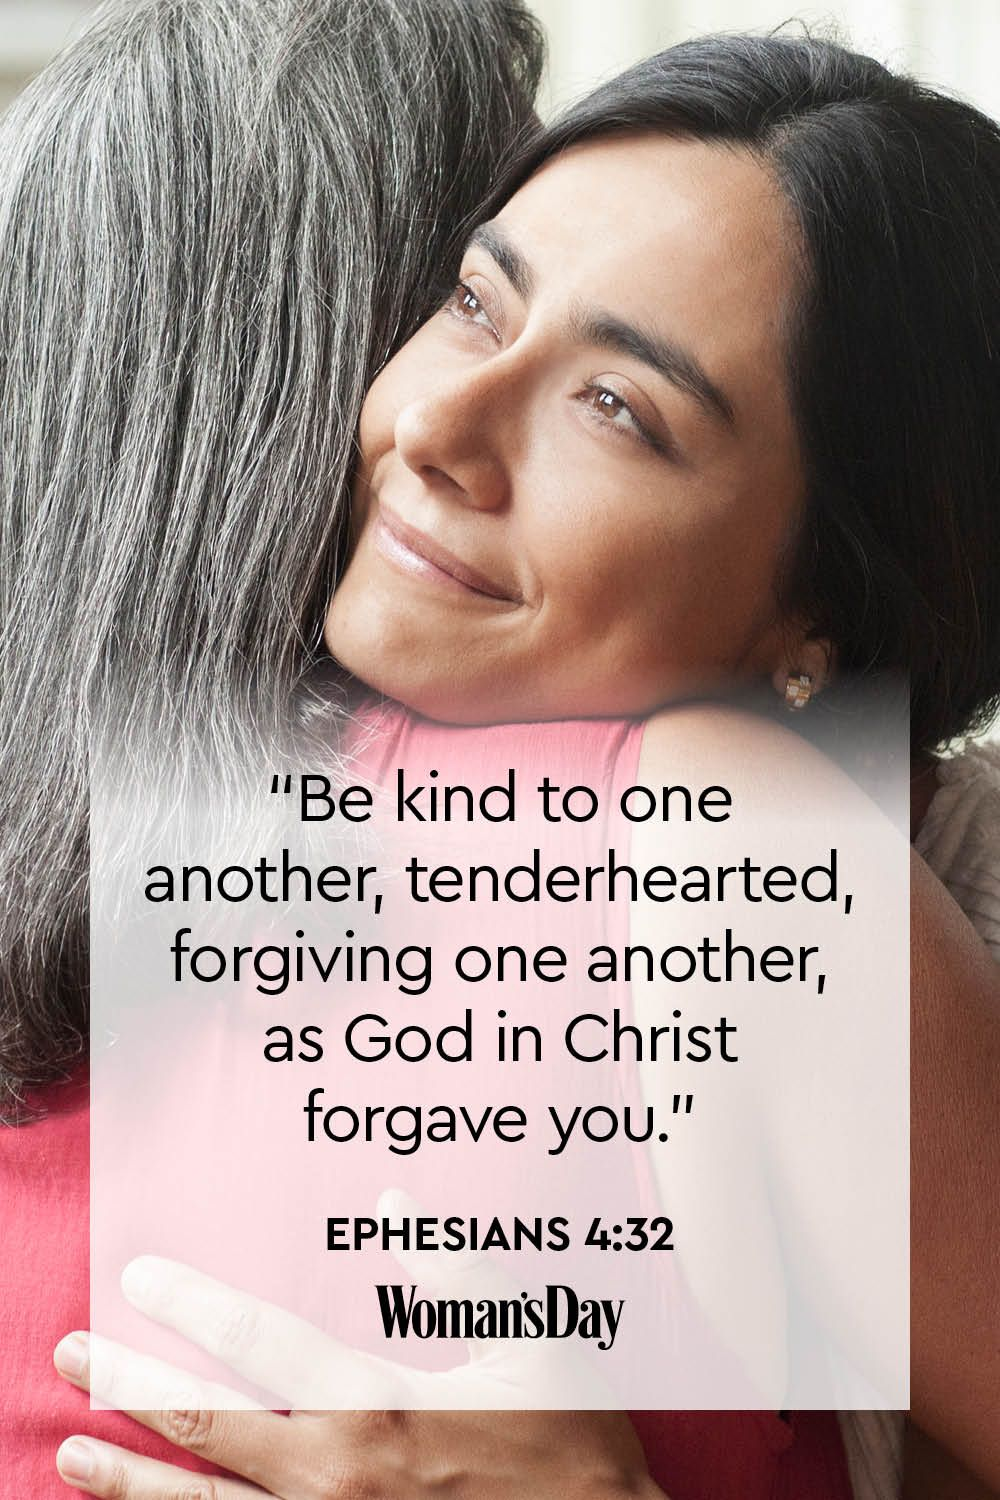 10 Bible Verses About Kindness — What Scriptures Are About Kindness?